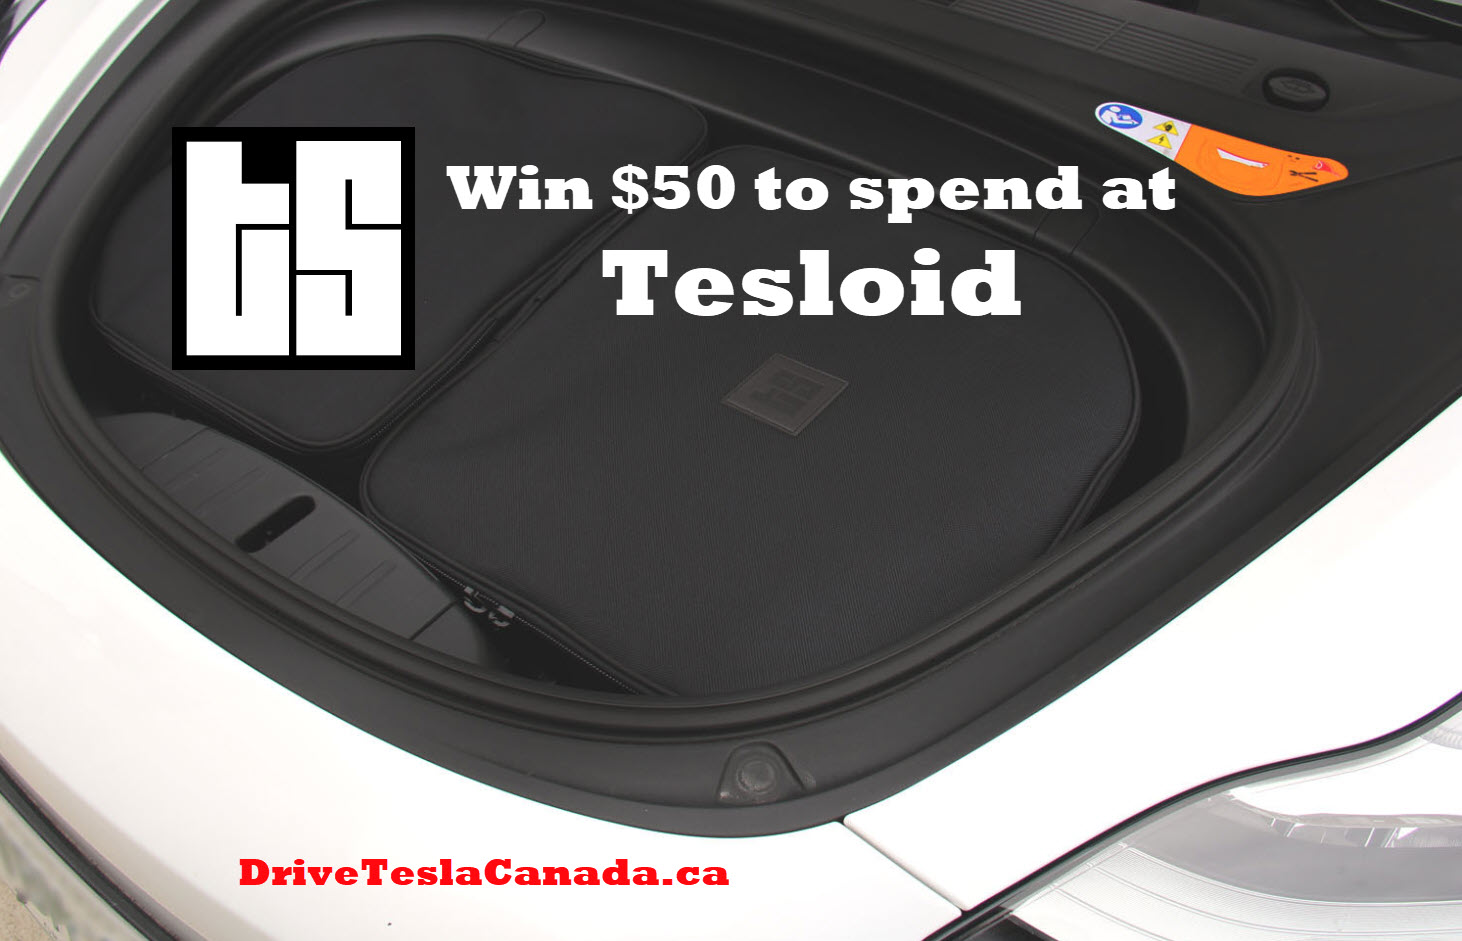 Tesloid giveaway